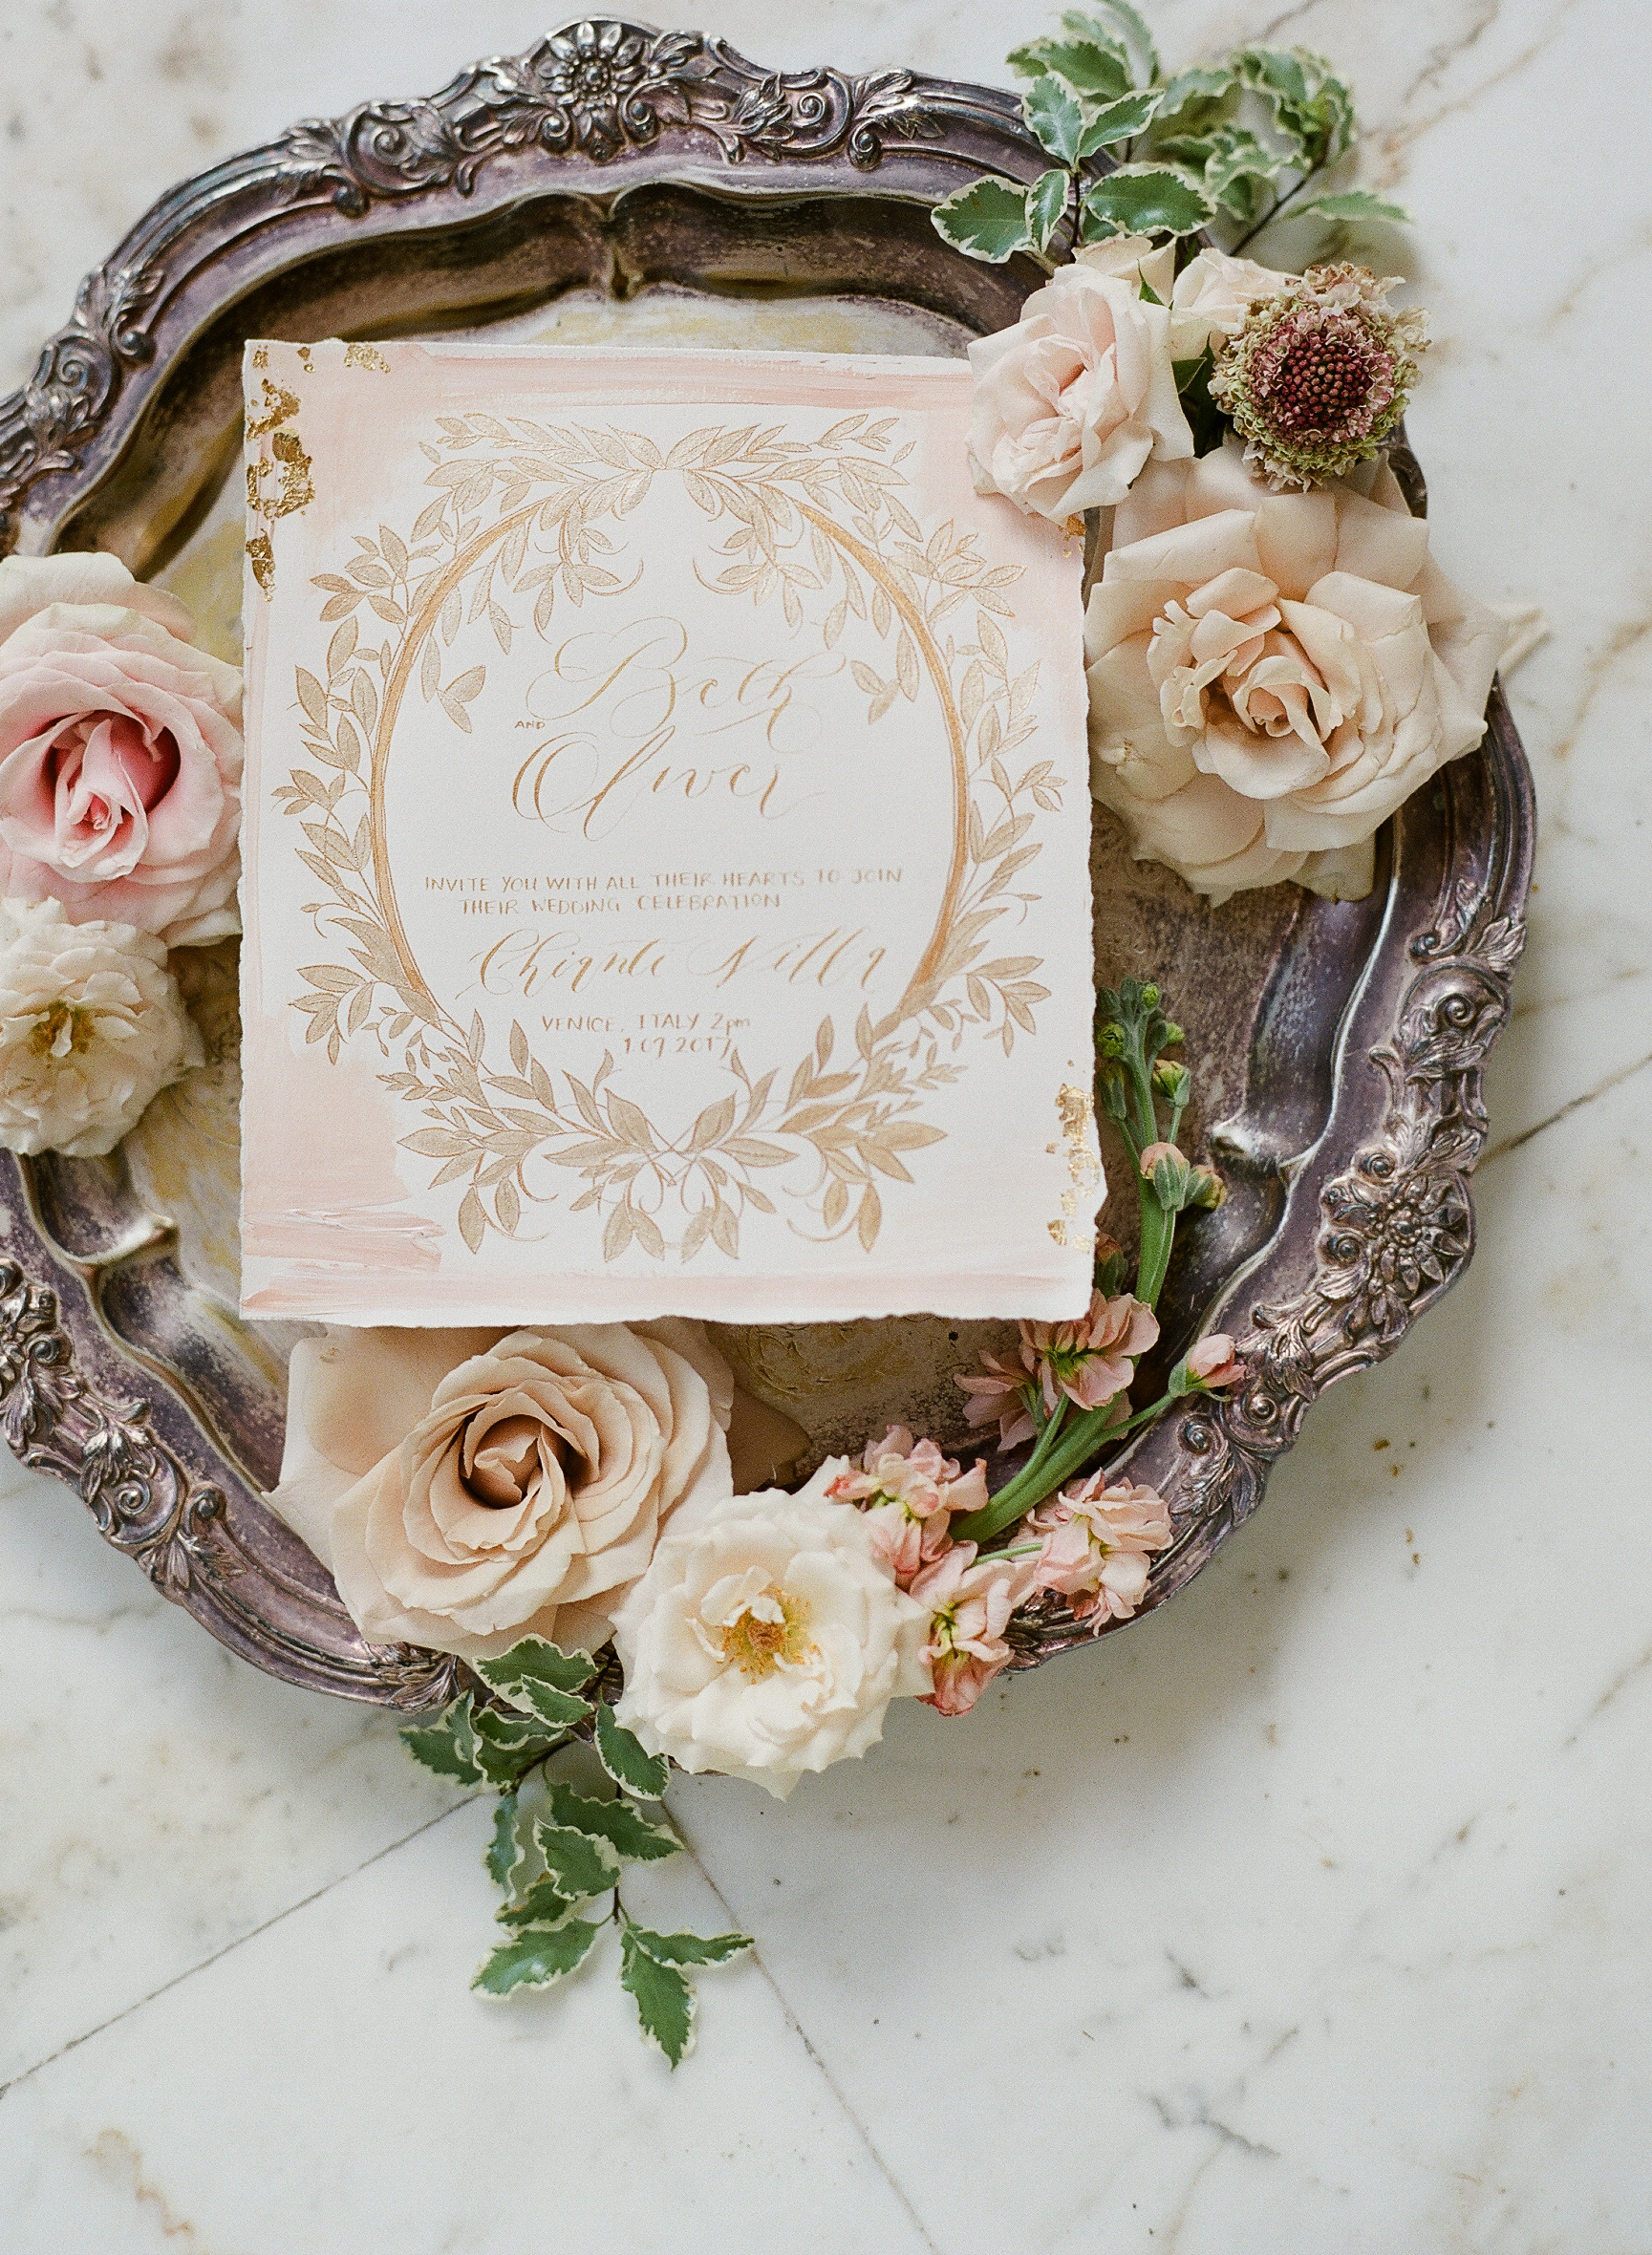 Wedding Stationery Created by Crimson Letters. Las Vegas Wedding Planner www.AndreaEppolitoEvents.com. Photo by Vizcaya Koby Brown.